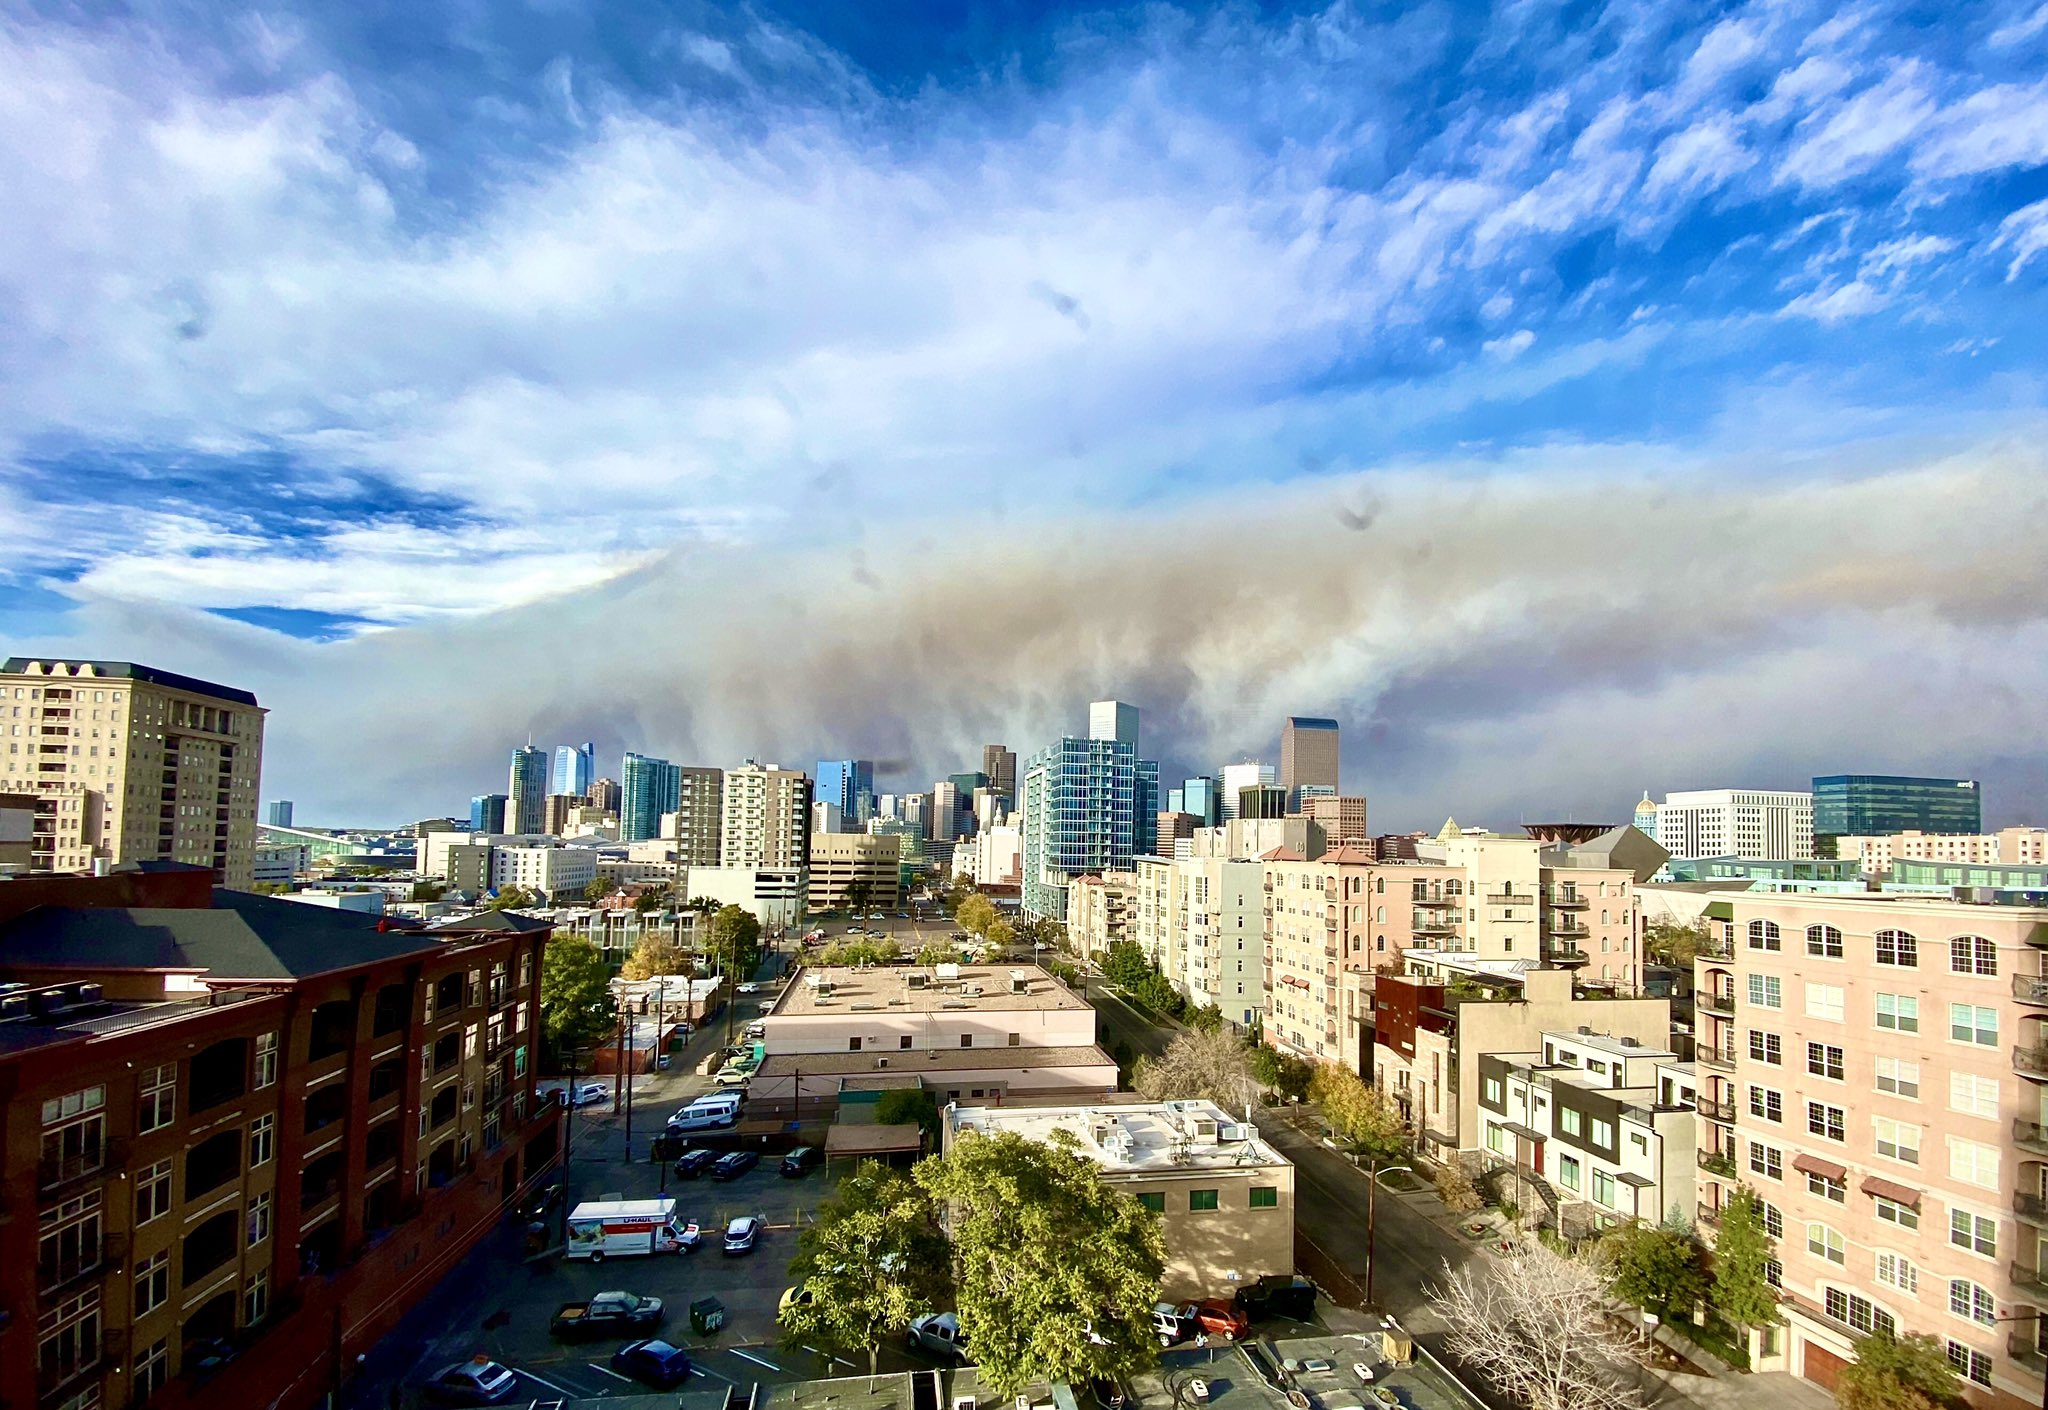 (1/2) Not a haboob, not a derecho: wildfire smoke from thousands of acres that blew up in a few hours hits downtown Denver